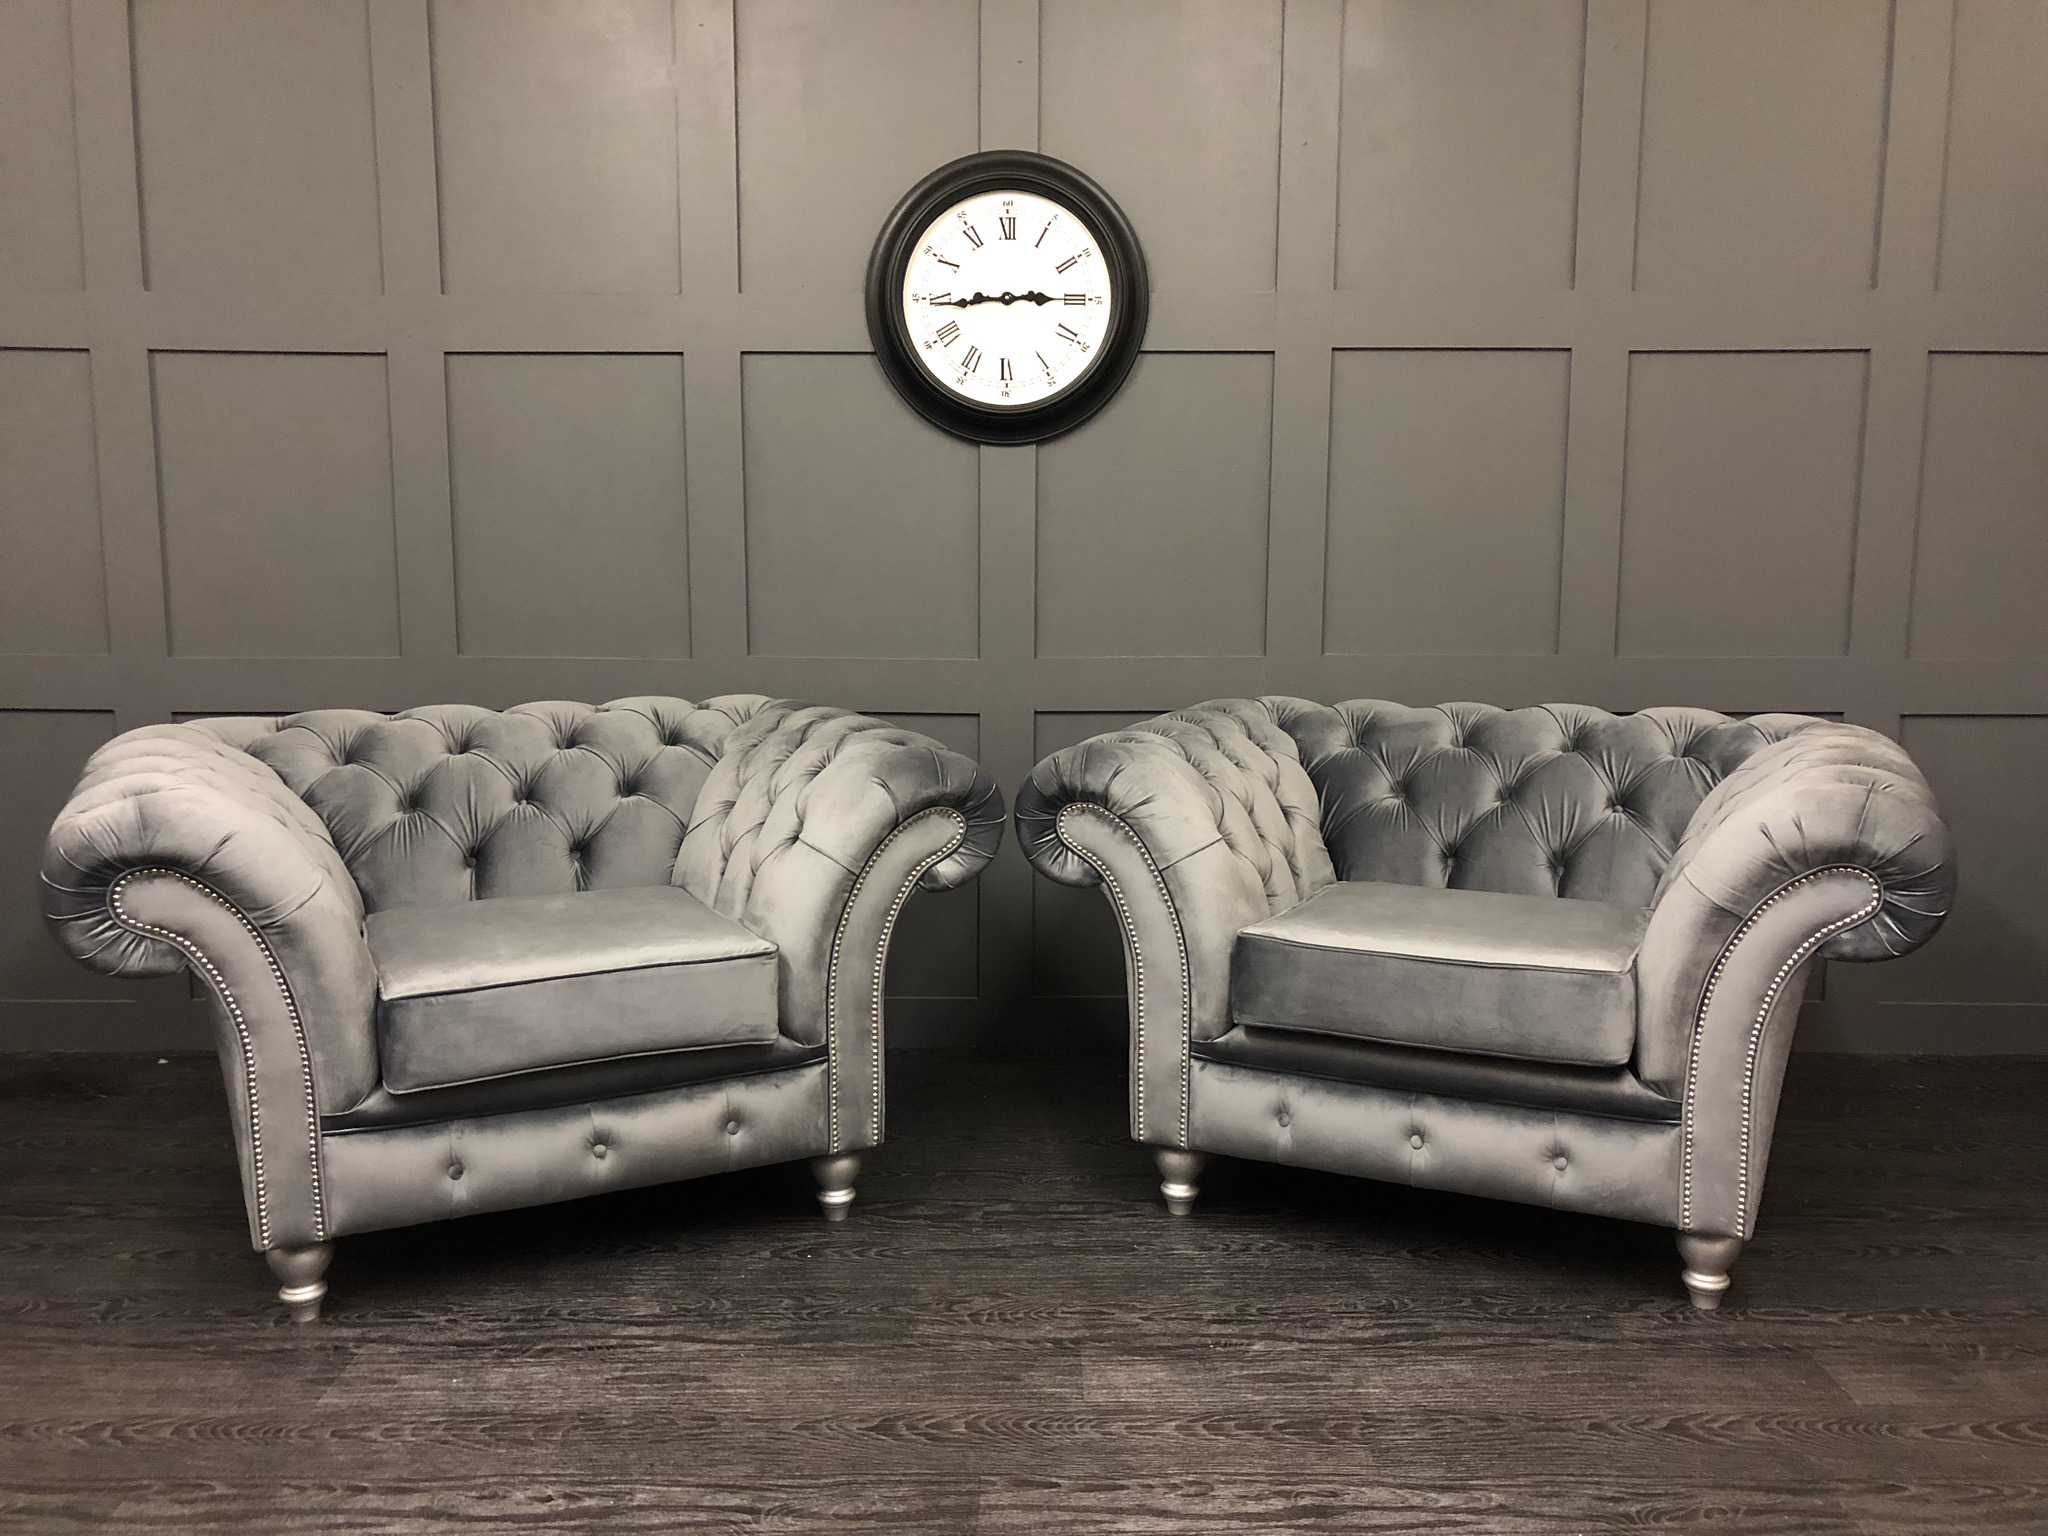 Pair of cambio steel london chairs